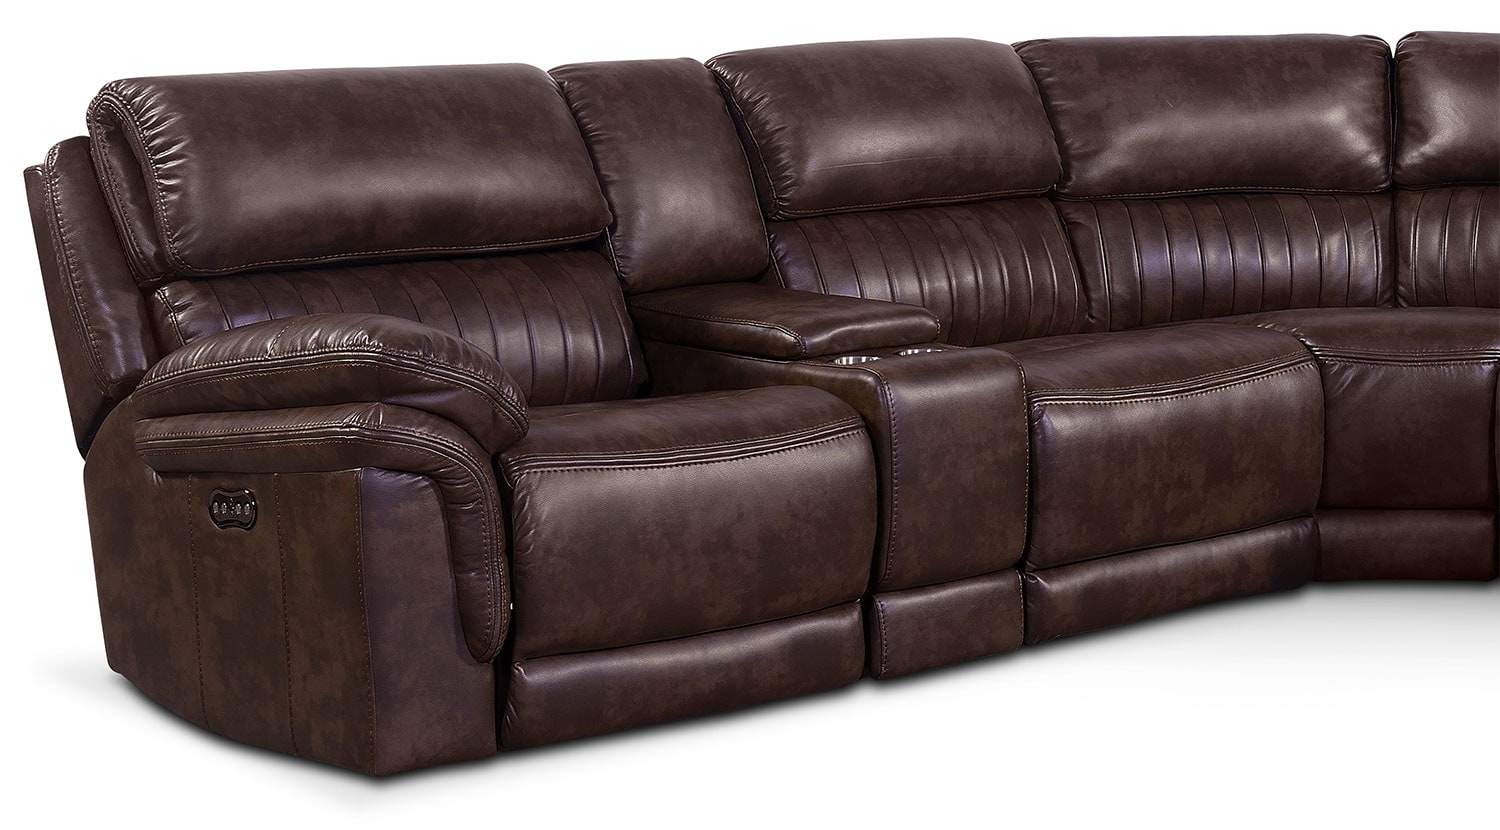 Sofas In Value City Furniture Monterey 6-piece Power Reclining Sectional With 3